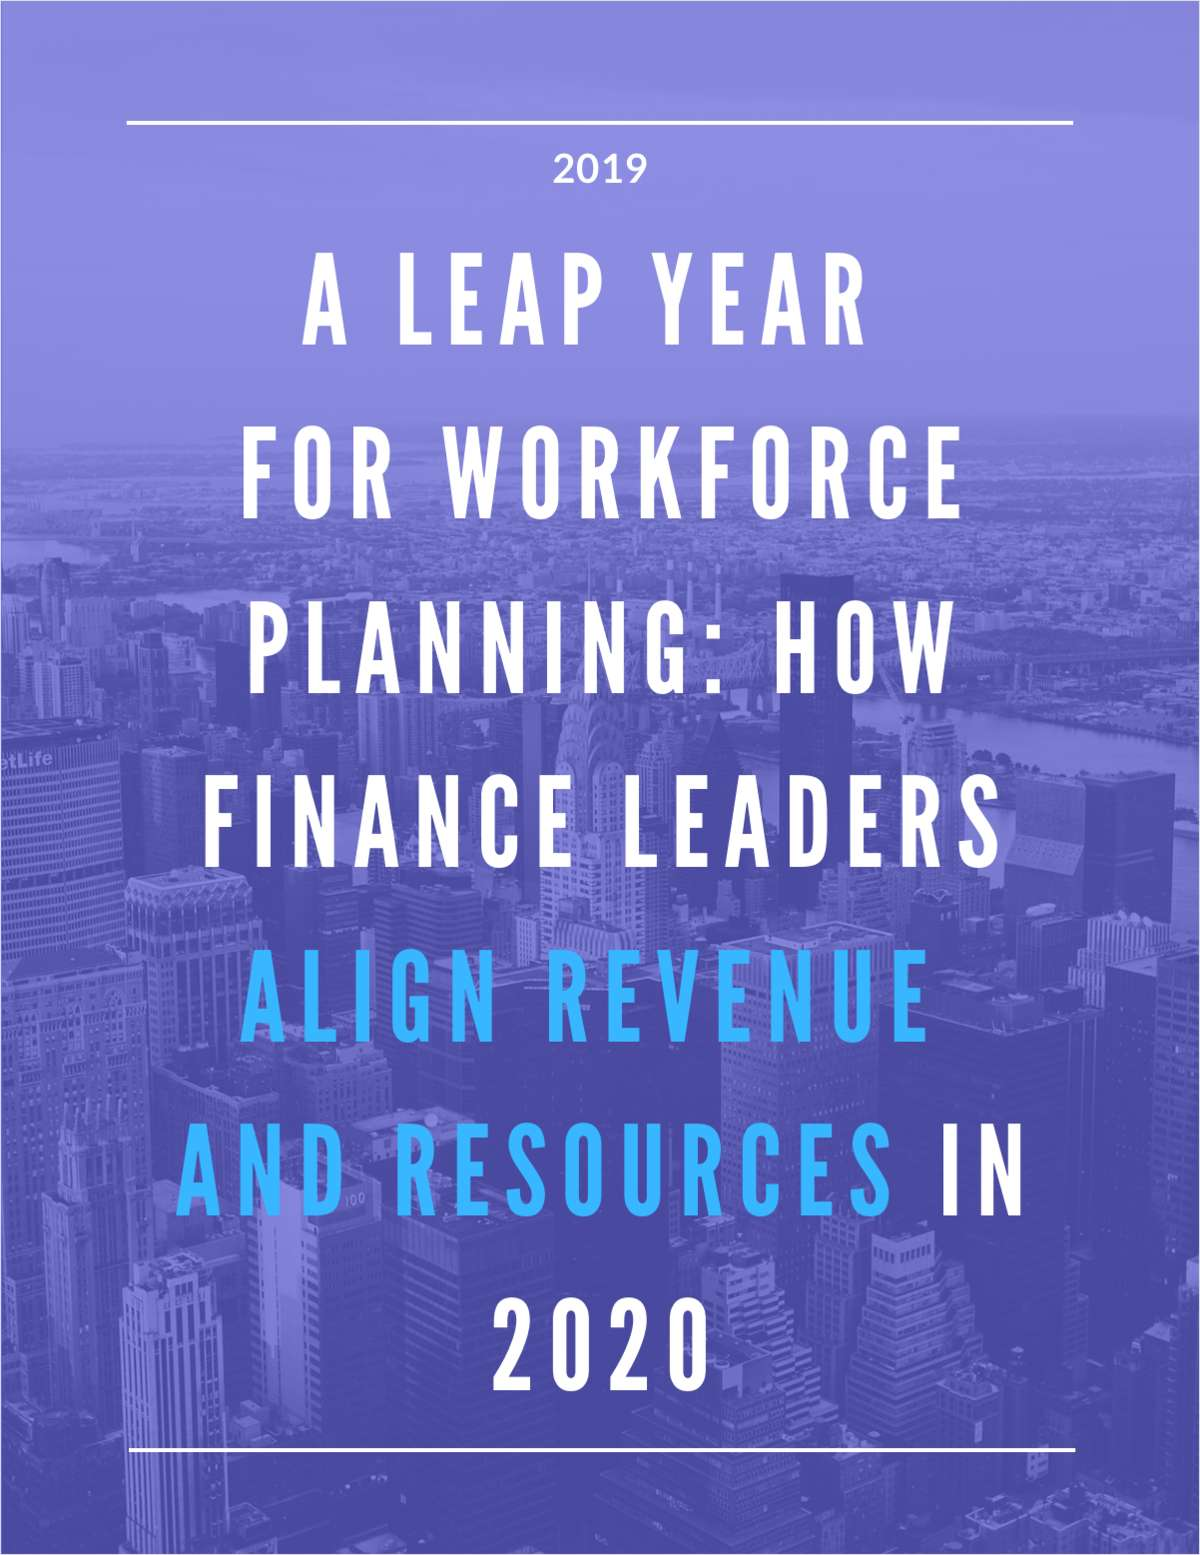 A Leap Year for Workforce Planning: How Finance Leaders Align Revenue and Resources in 2020